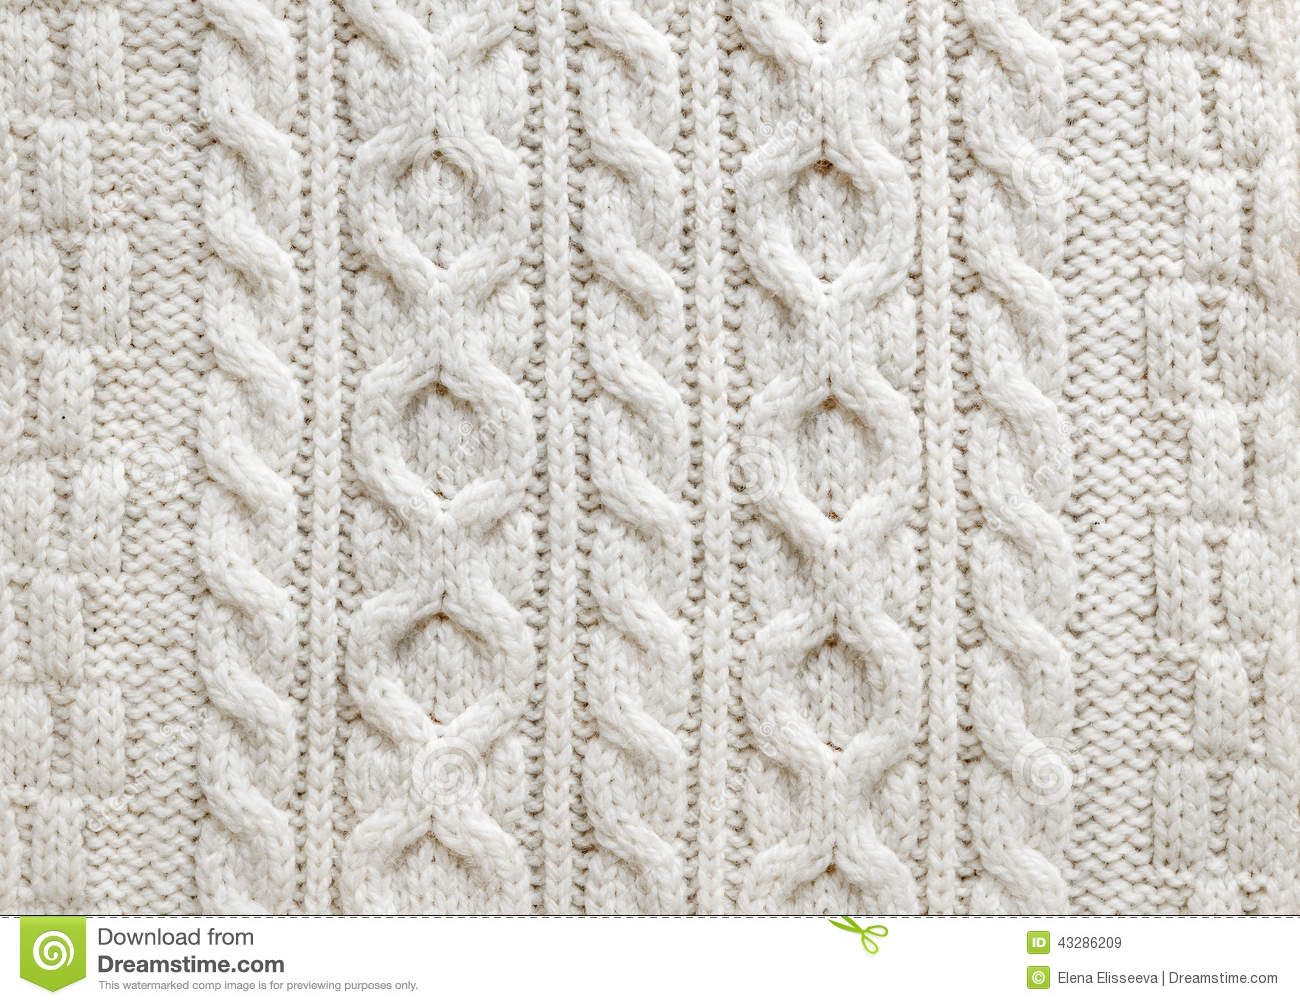 Knitting Pick Up Knit Stitches : Cable Knit Fabric Background Stock Photo - Image: 43286209